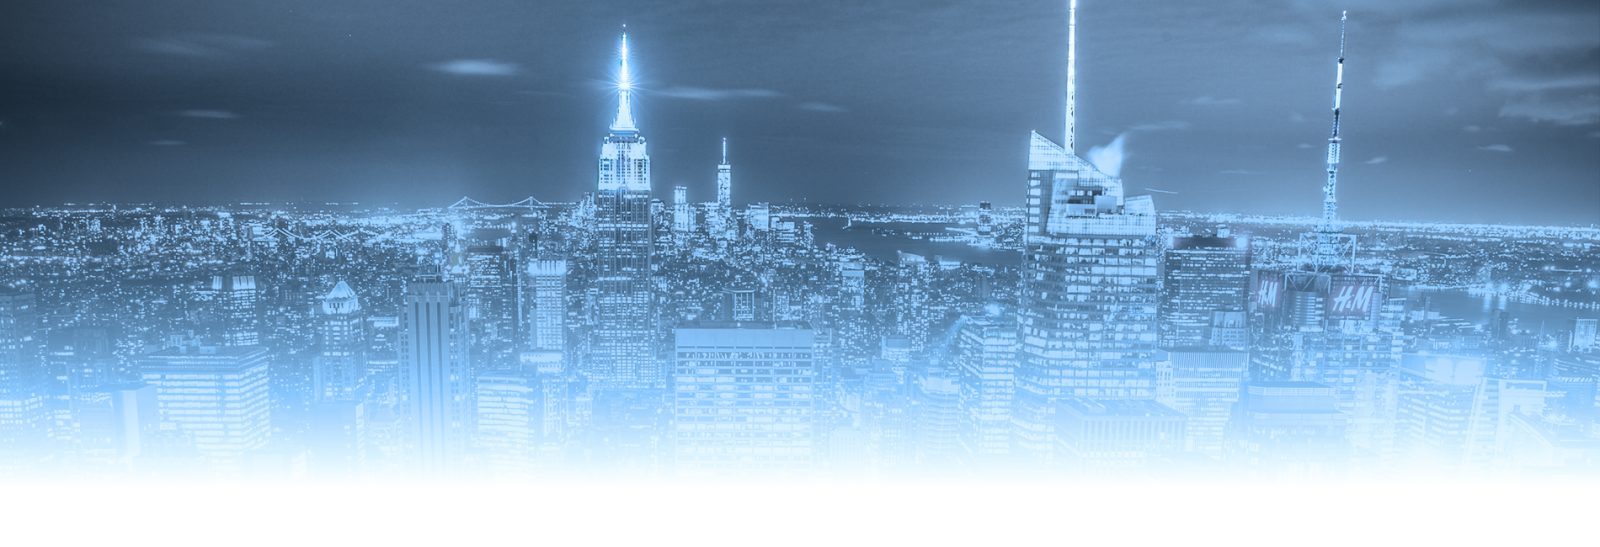 New York State Cyber Regulations landing page with black and white new york city skyline